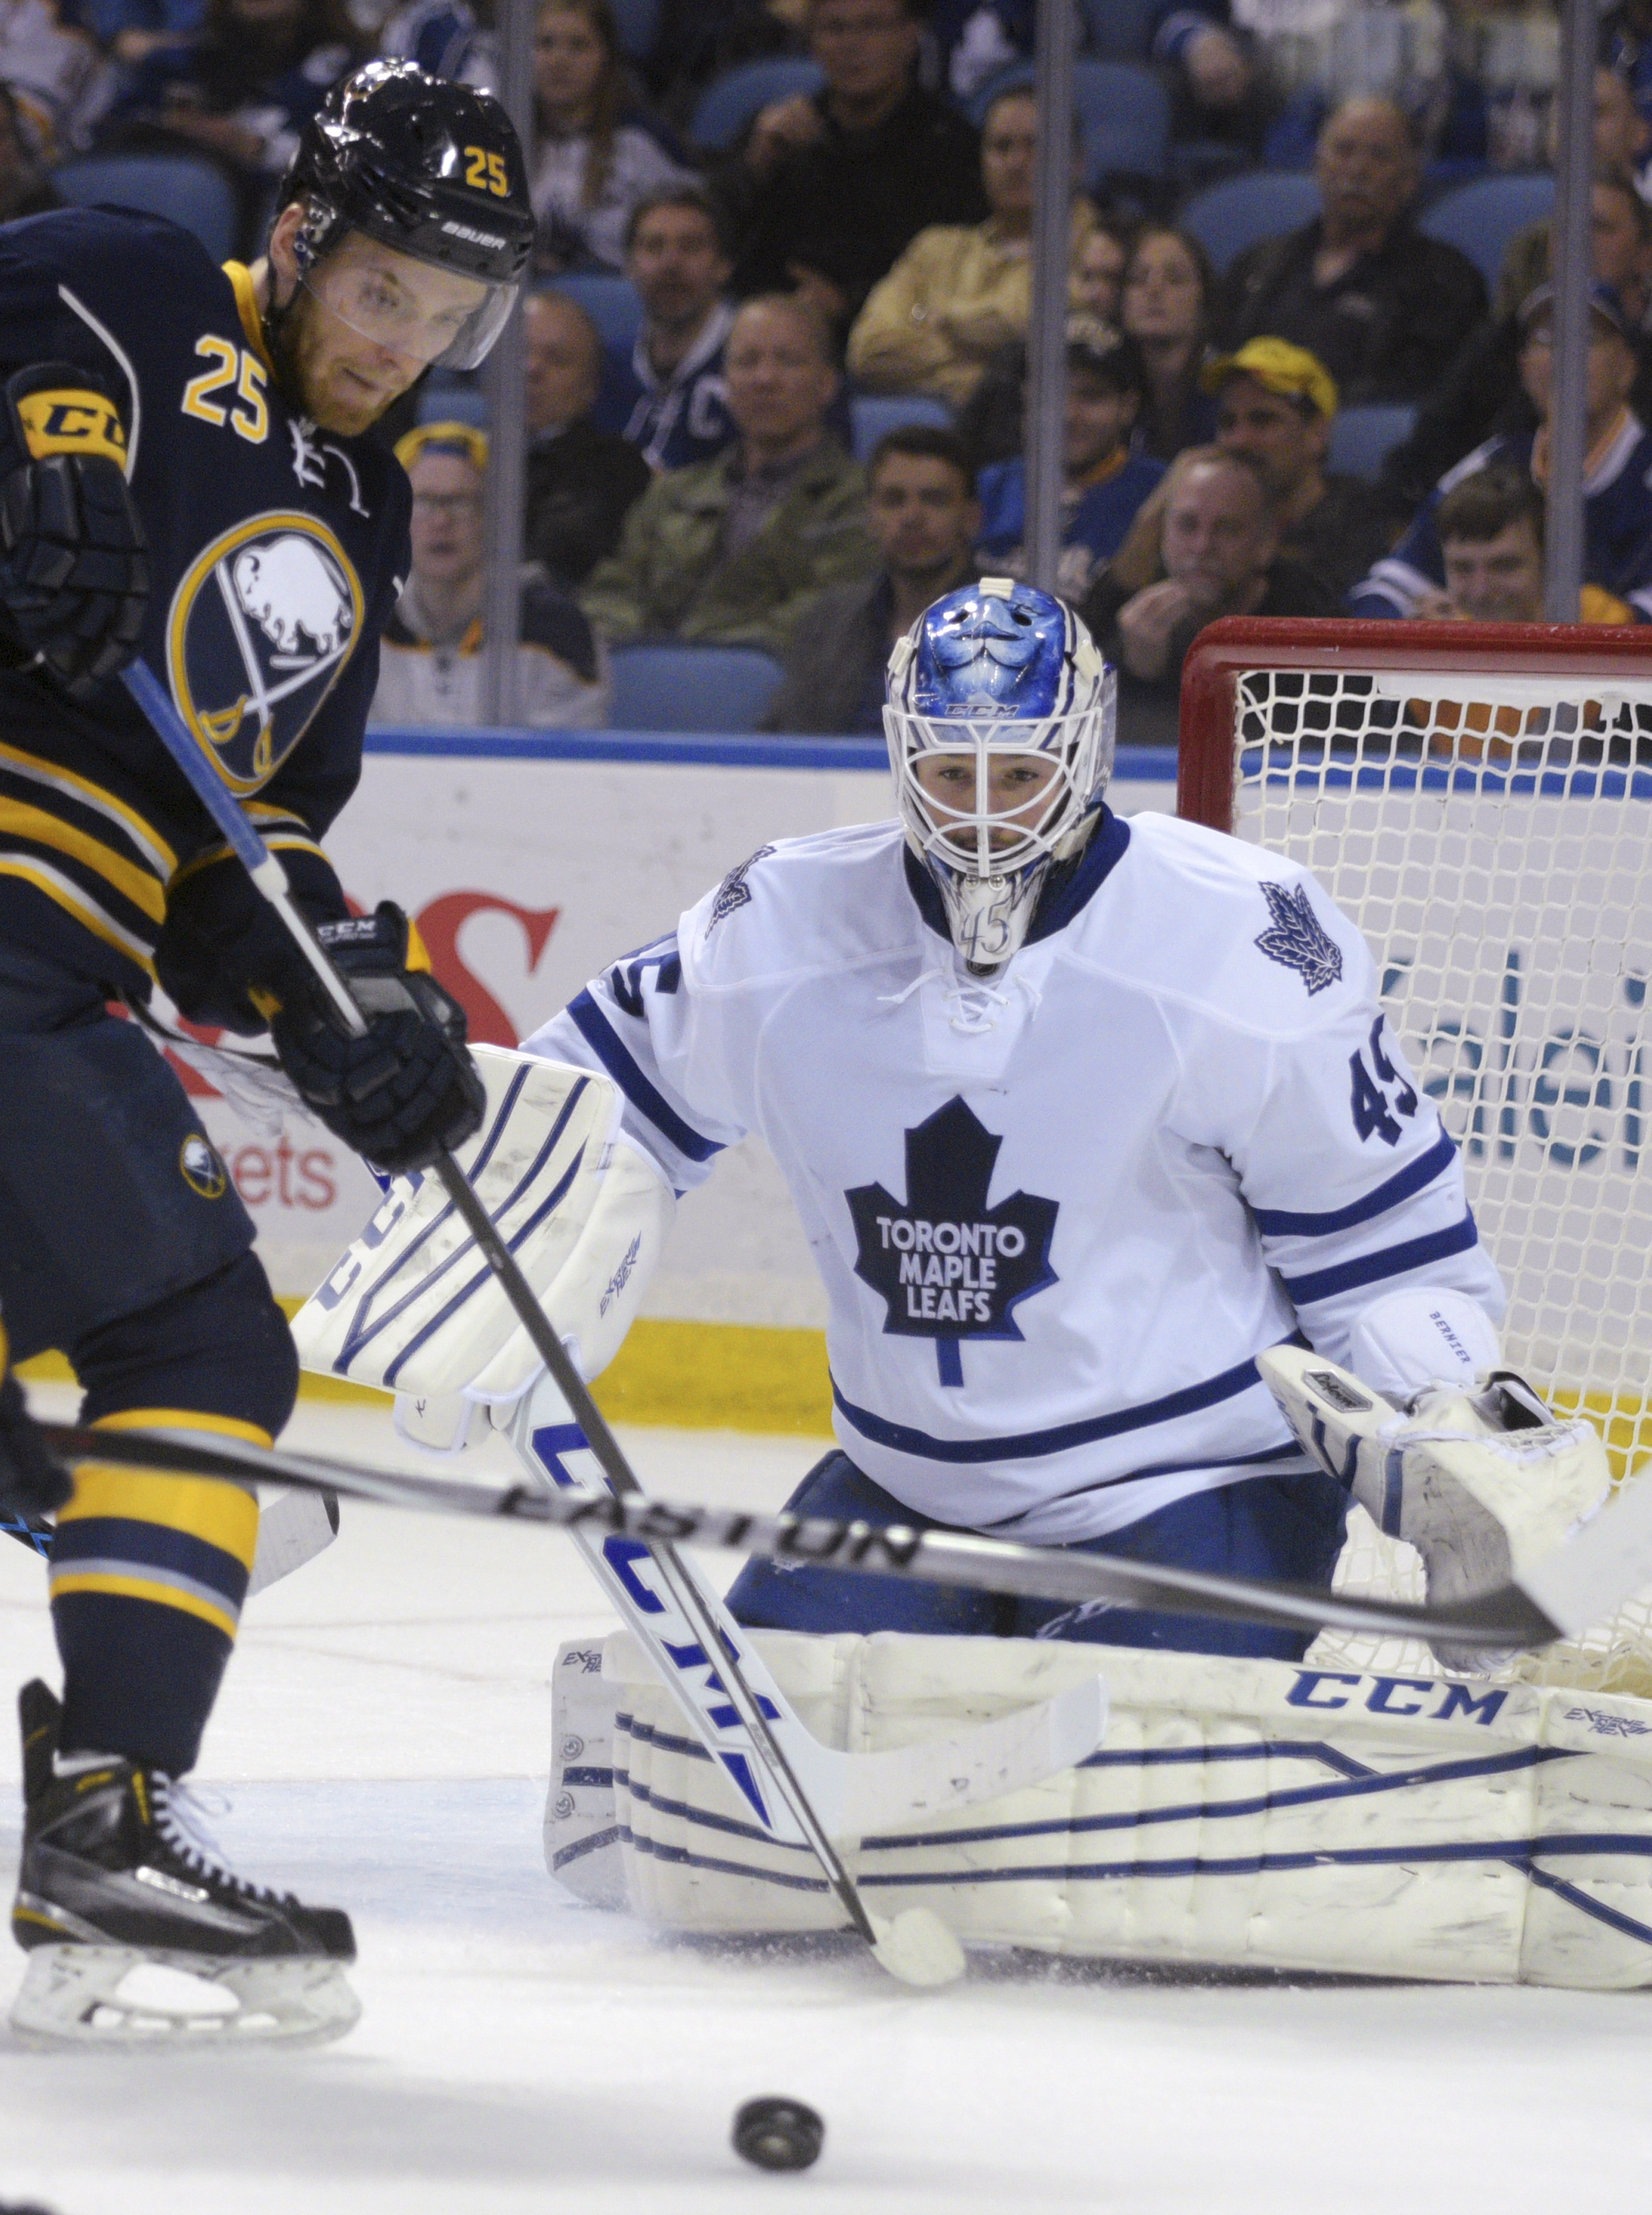 Buffalo Sabres center Mikhail Grigorenko (25), of Russia, watches the puck after a save by Toronto Maple Leafs goaltender Jonathan Bernier during the first period of an NHL hockey game Wednesday, April 1, 2015, in Buffalo, N.Y. Buffalo won 4-3. (AP Photo/